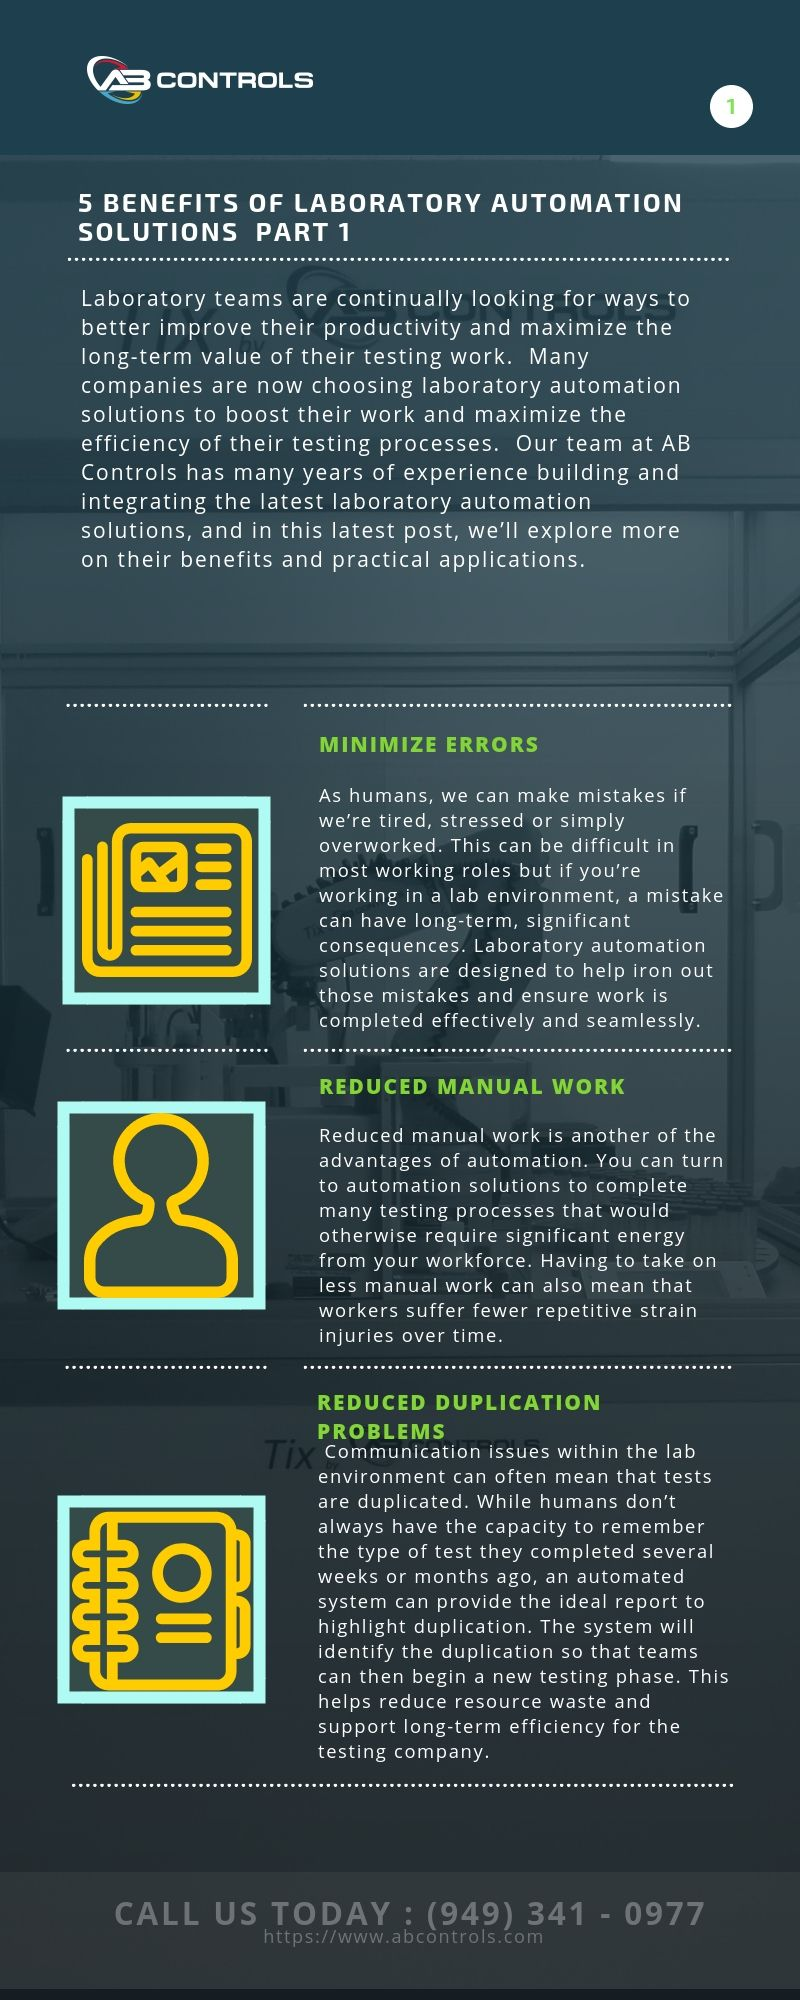 5 Benefits of laboratory automation solutions - Part 1